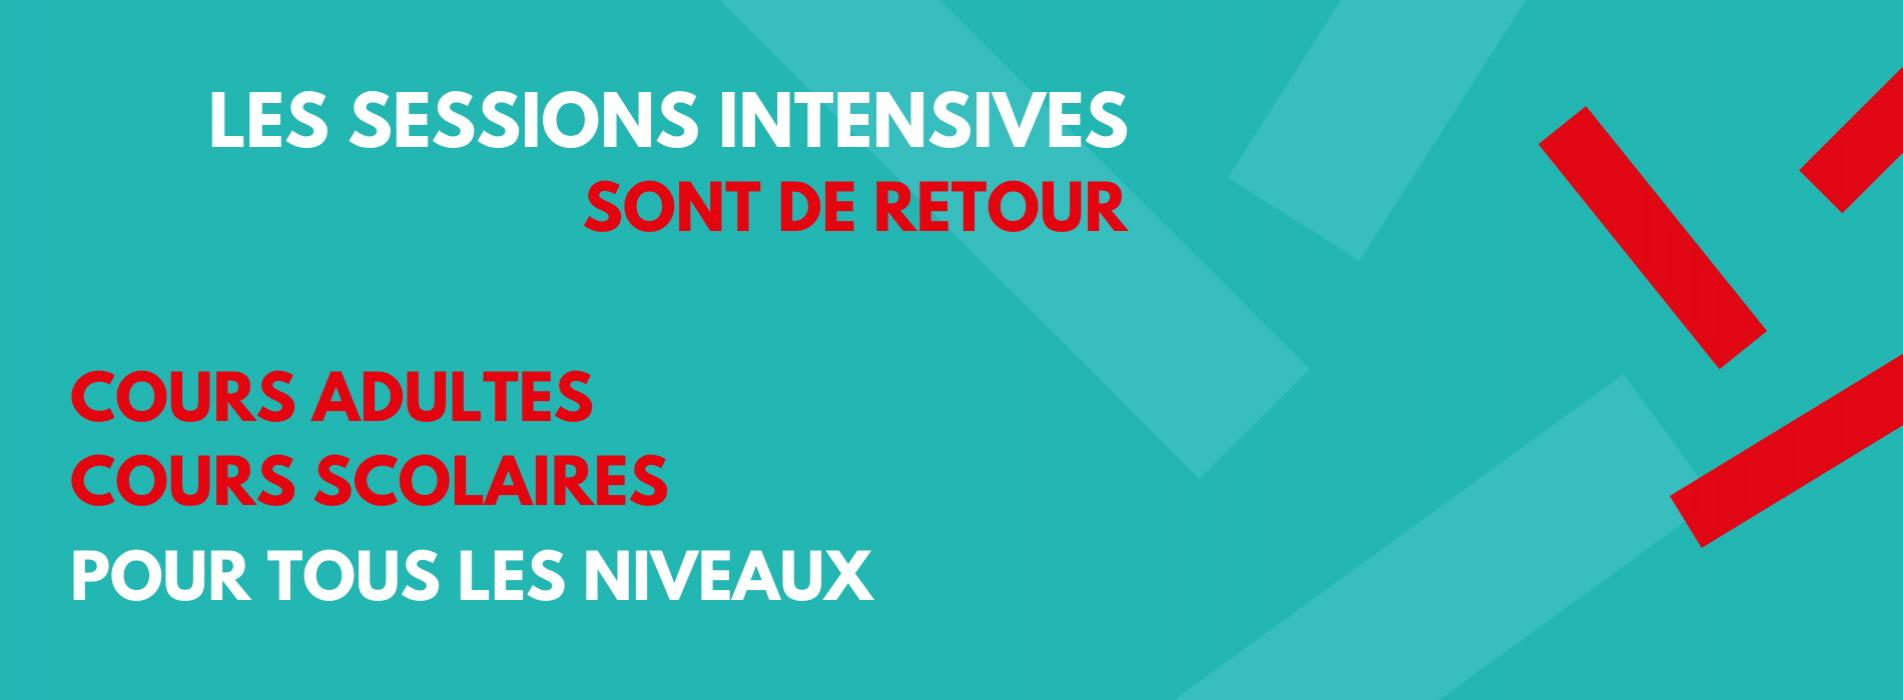 Sessions intensives - Été 2021 (3)